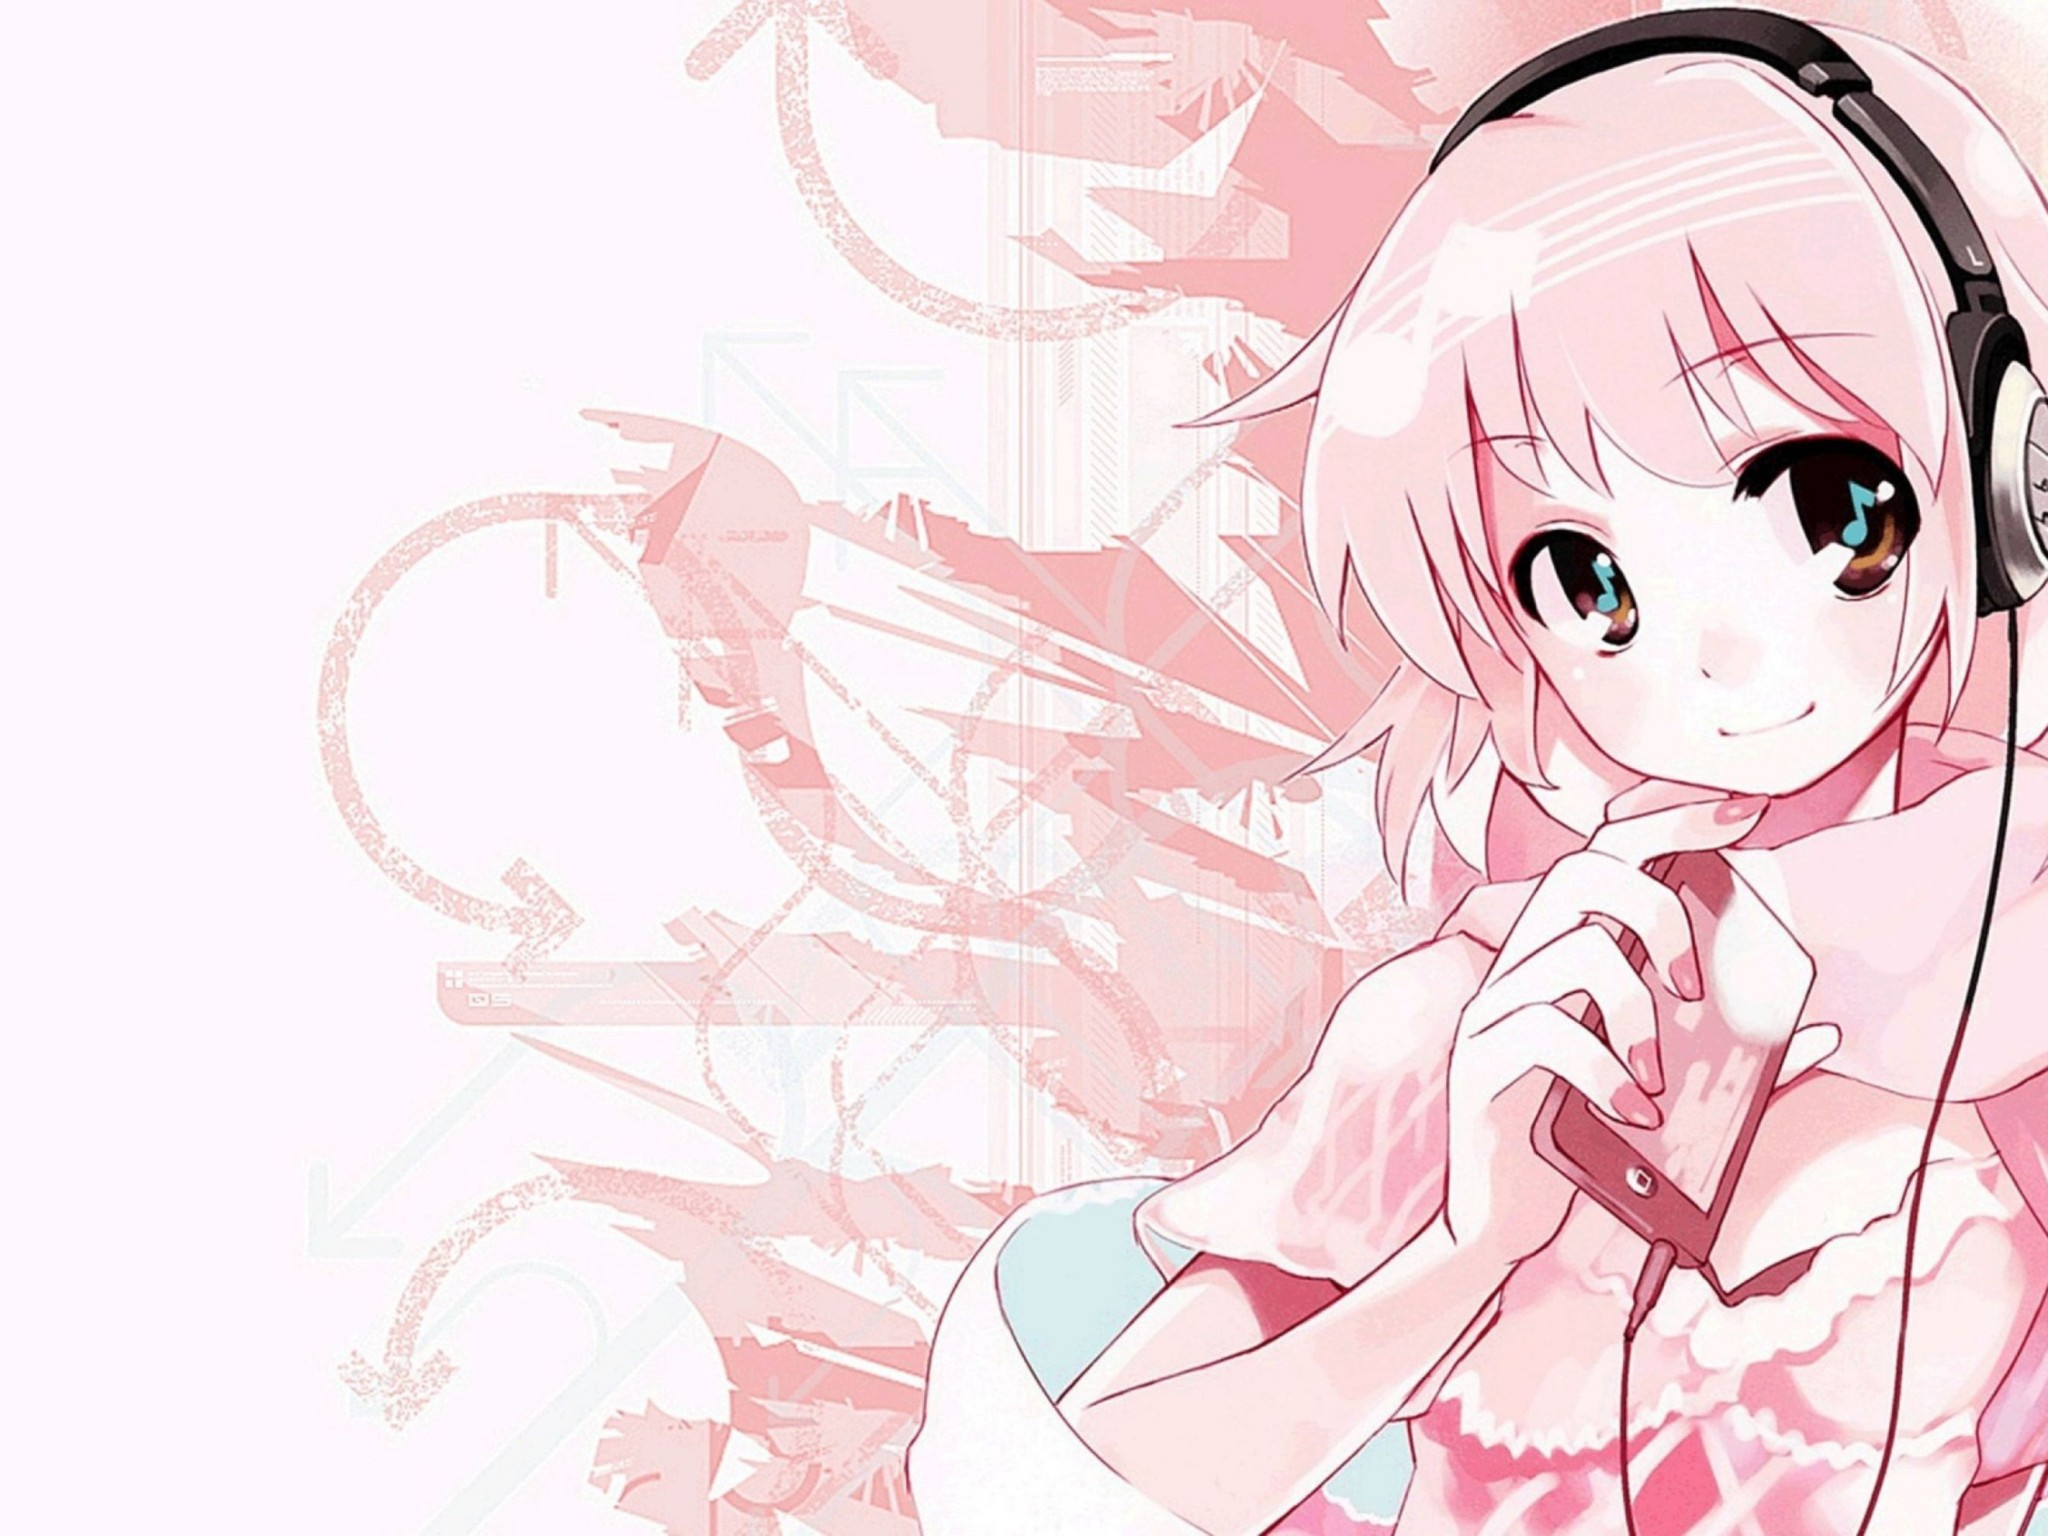 Pink Anime Music Wallpaper Desktop Hd Wallpaper Download Free Image Picture Photo On Dailyhdwallpaper Com 3512